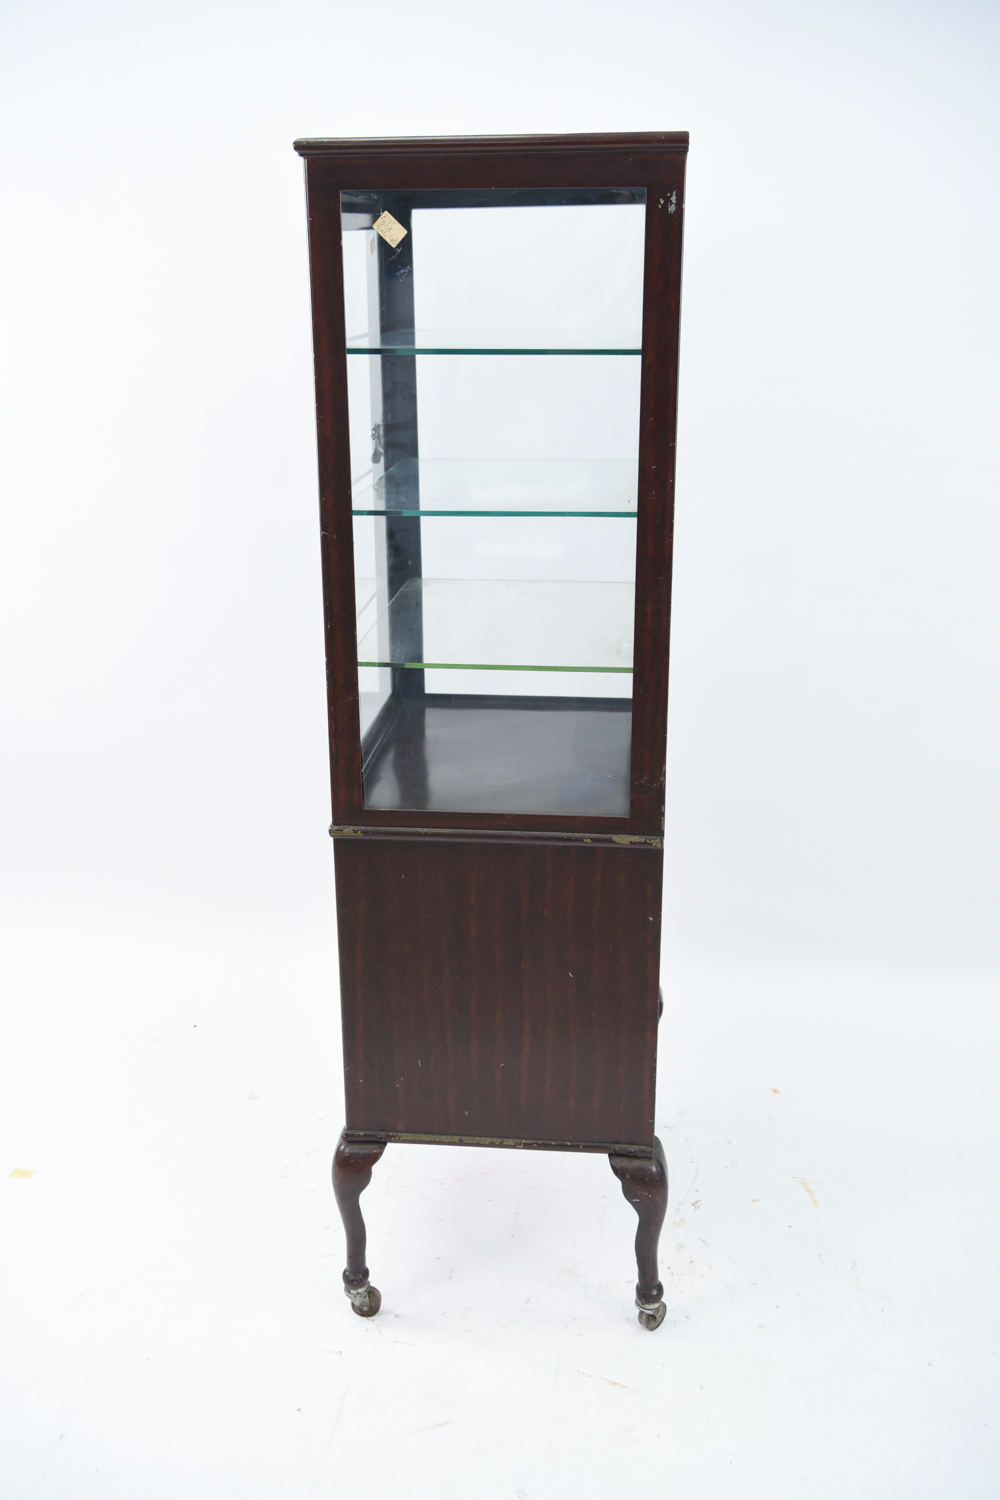 Lot 164: ANTIQUE MEDICAL CABINET WITH JAPANNED FINISH - ANTIQUE MEDICAL CABINET WITH JAPANNED FINISH